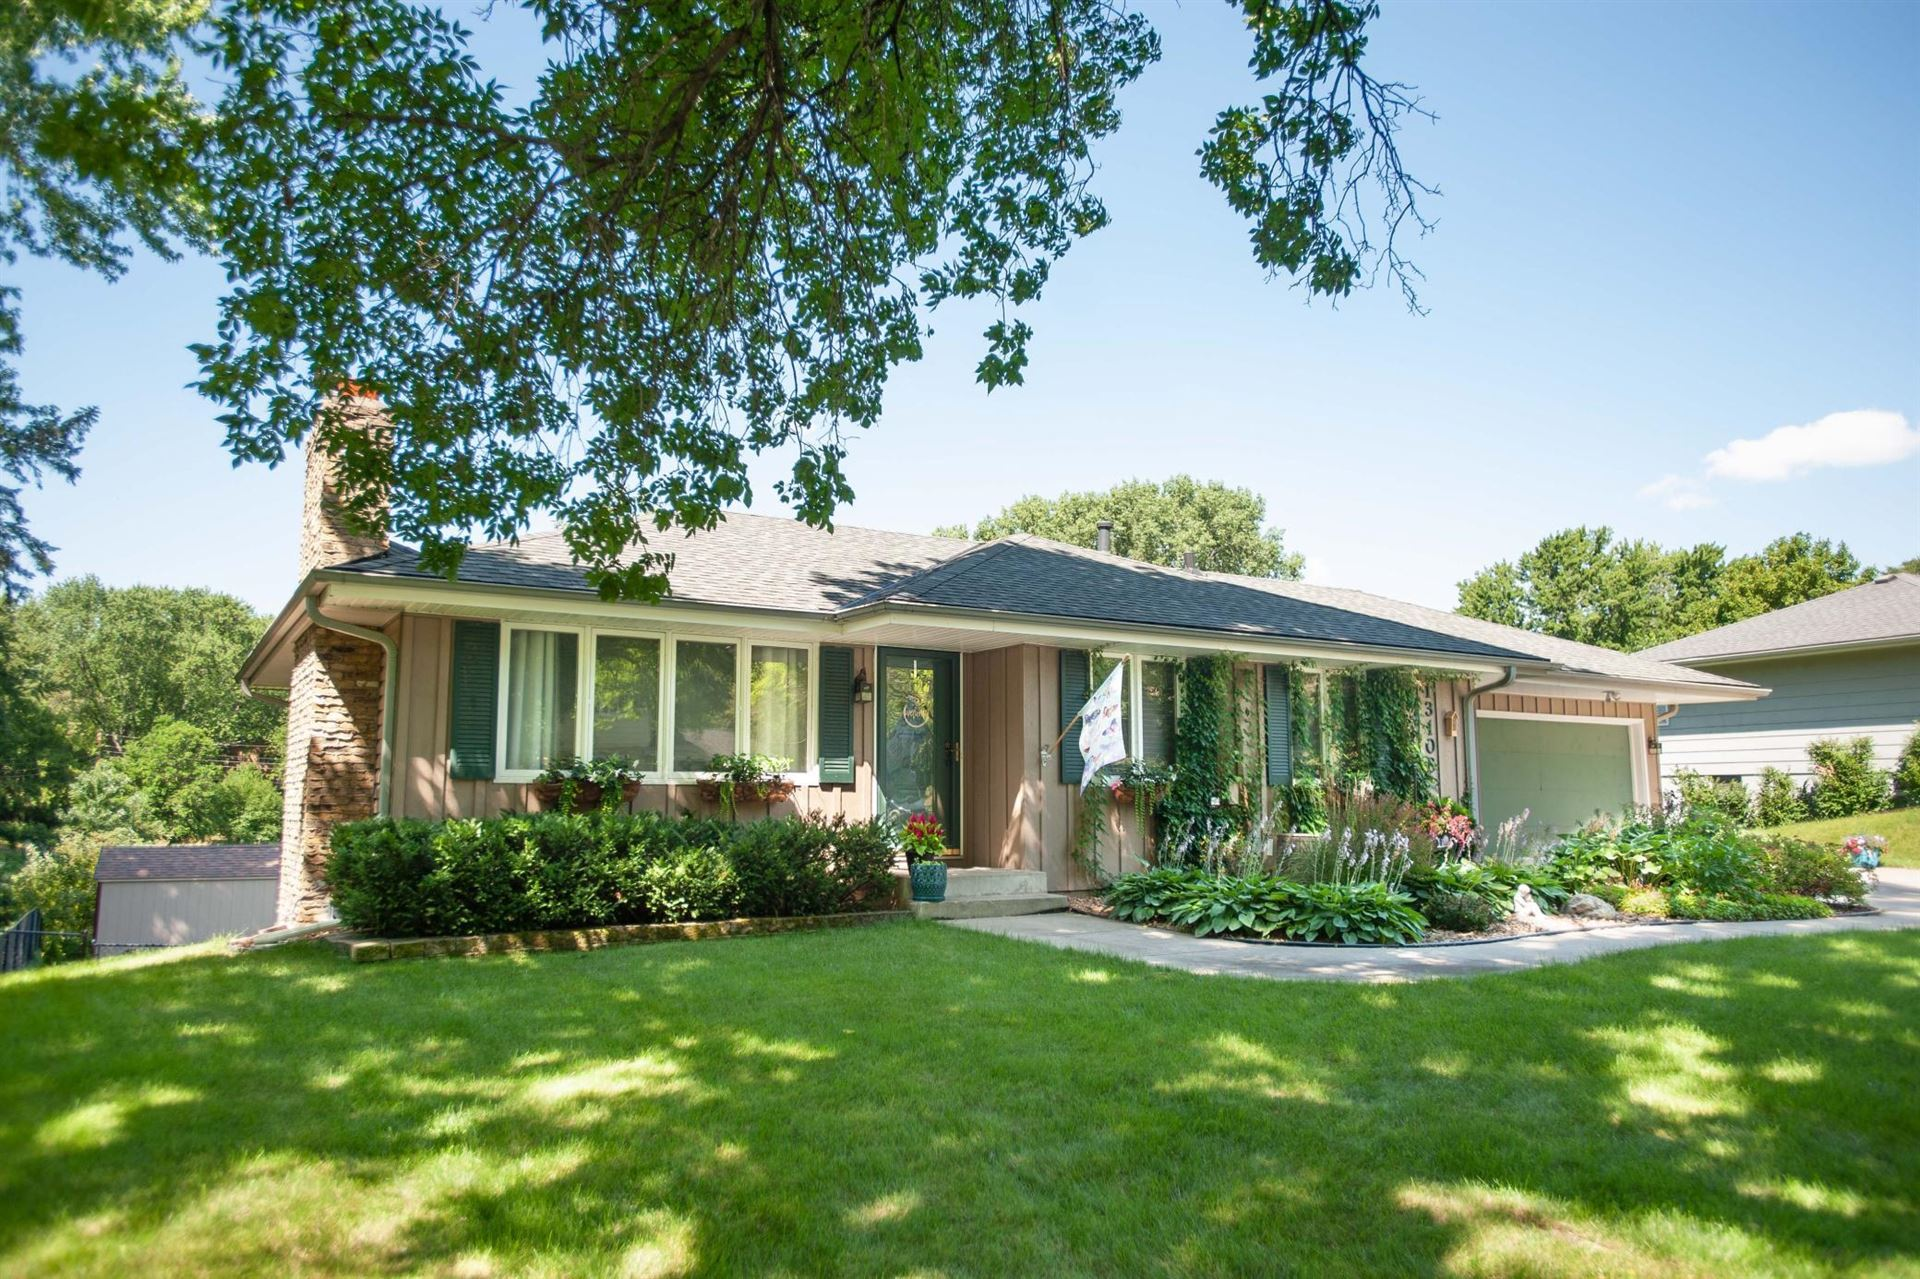 Photo of 13108 Lakeview Drive, Burnsville, MN 55337 (MLS # 6073712)